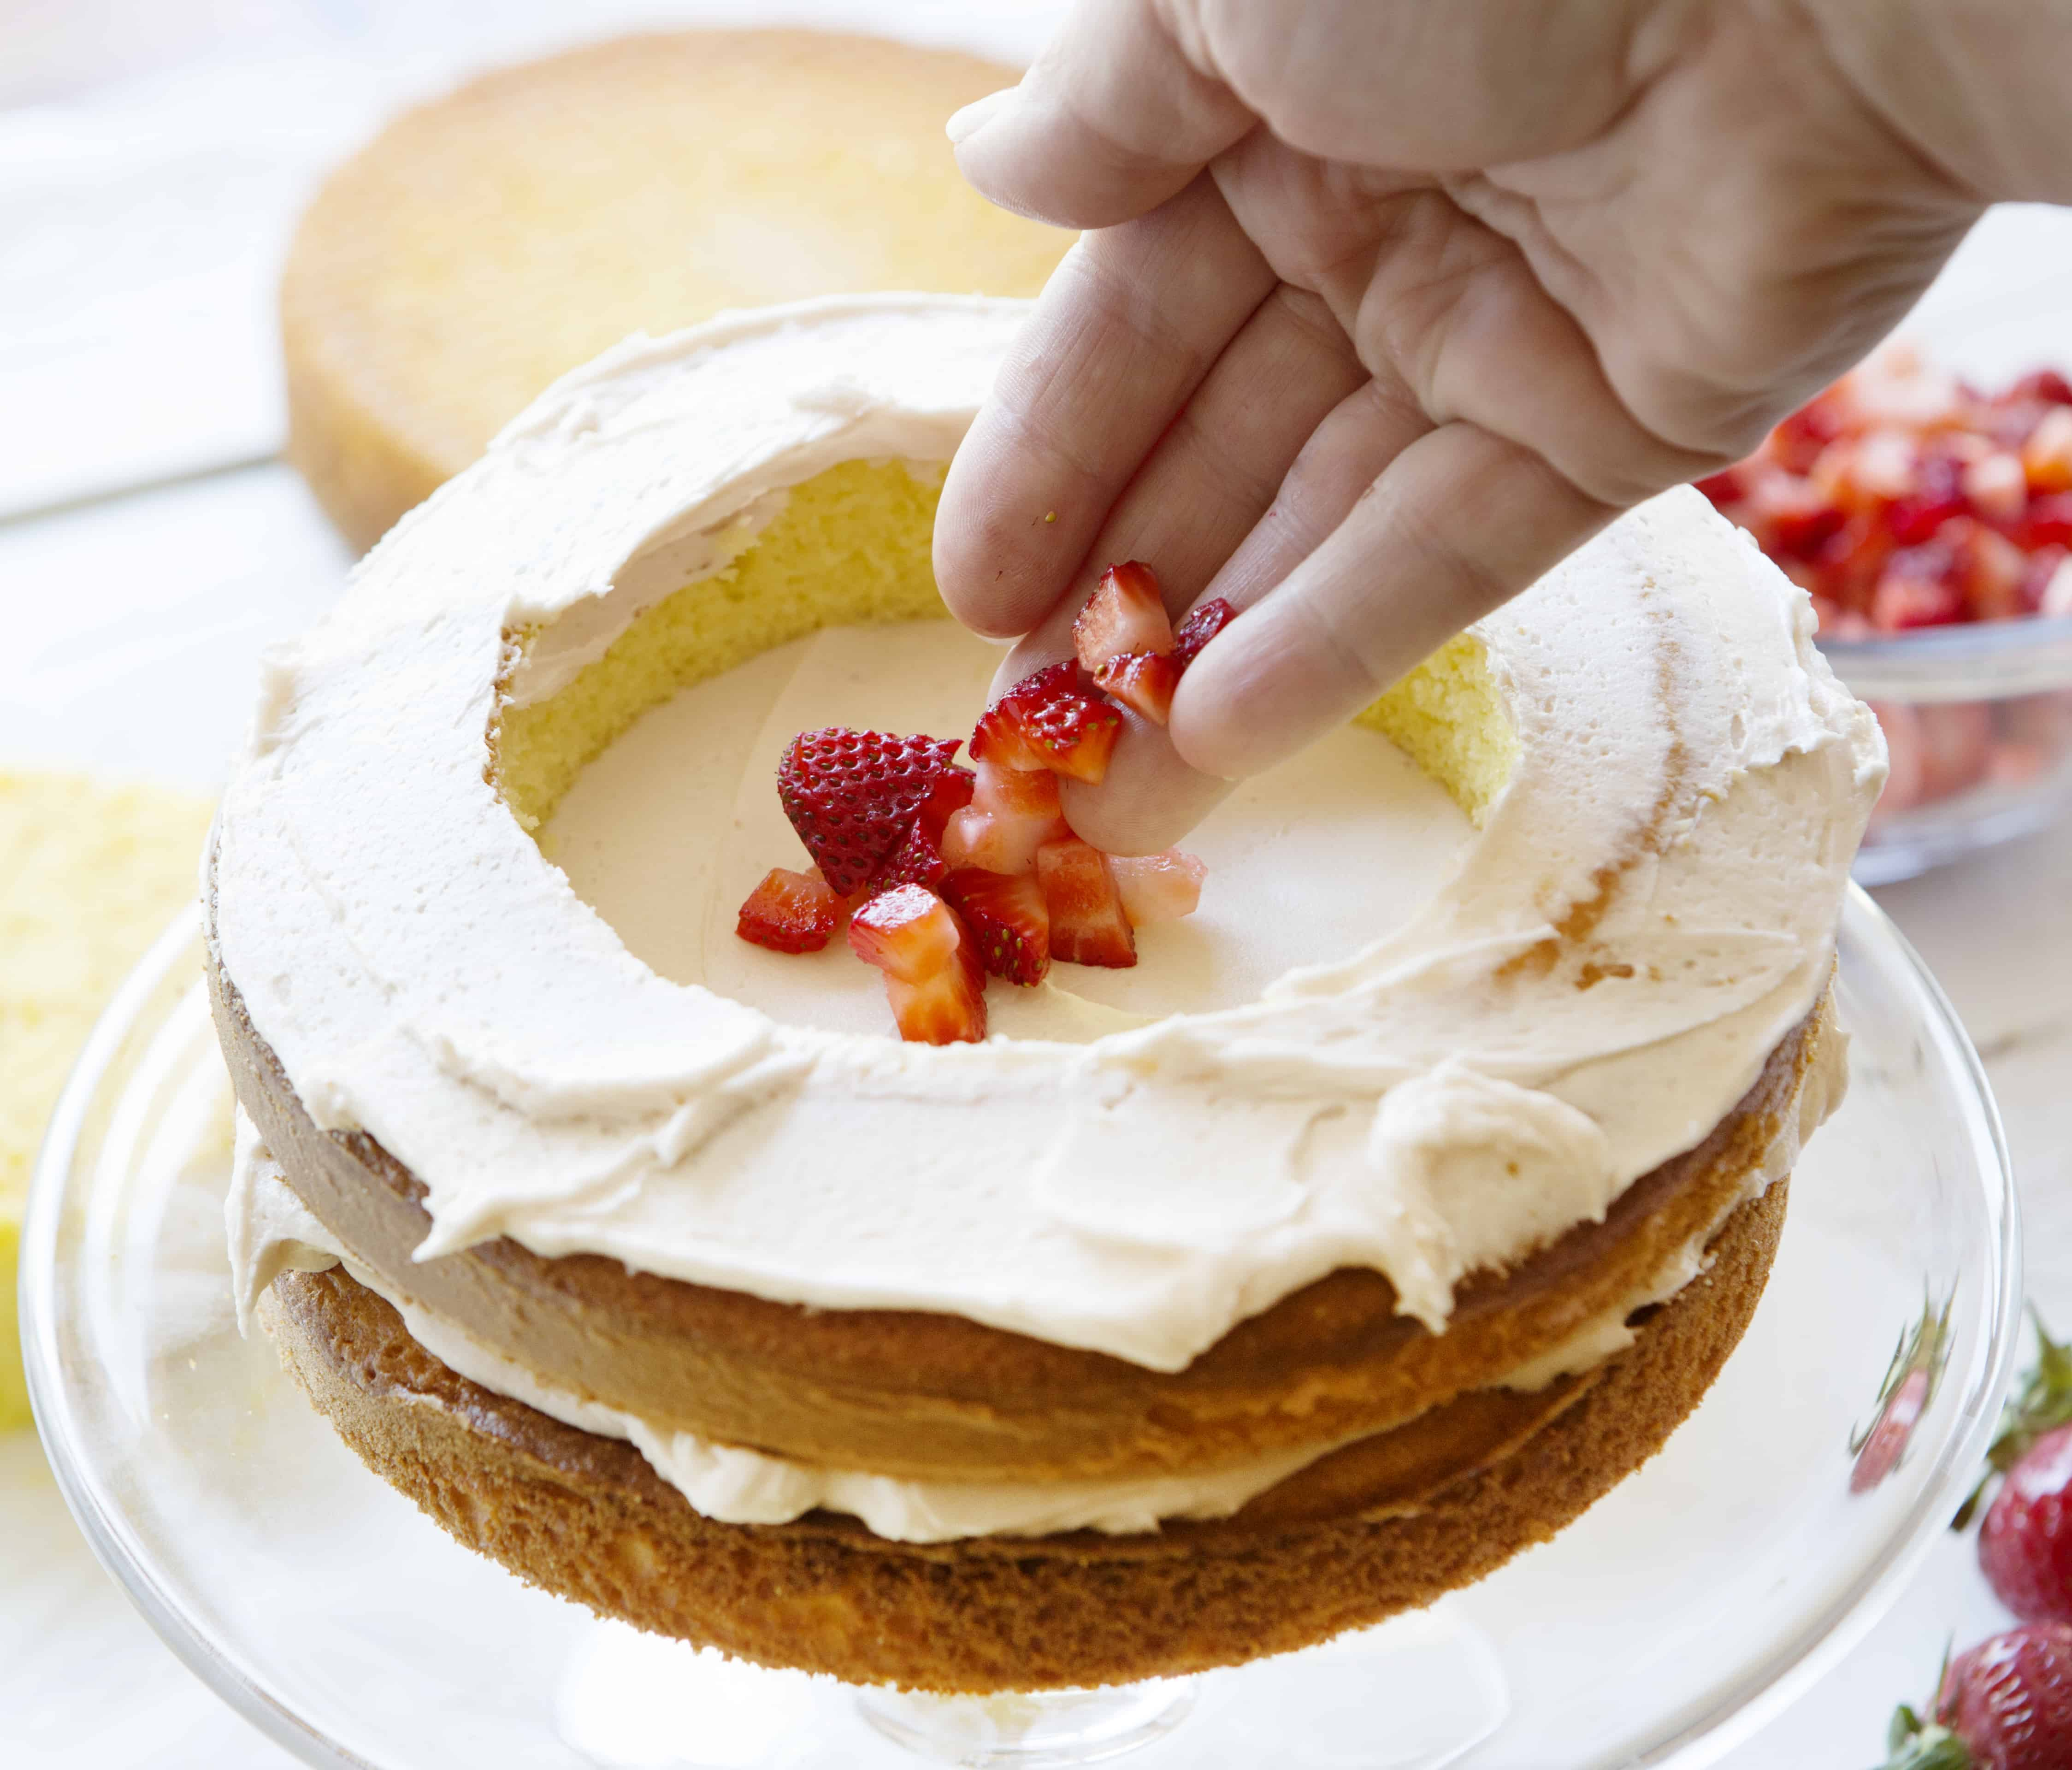 Tips for Surprise Inside Cakes